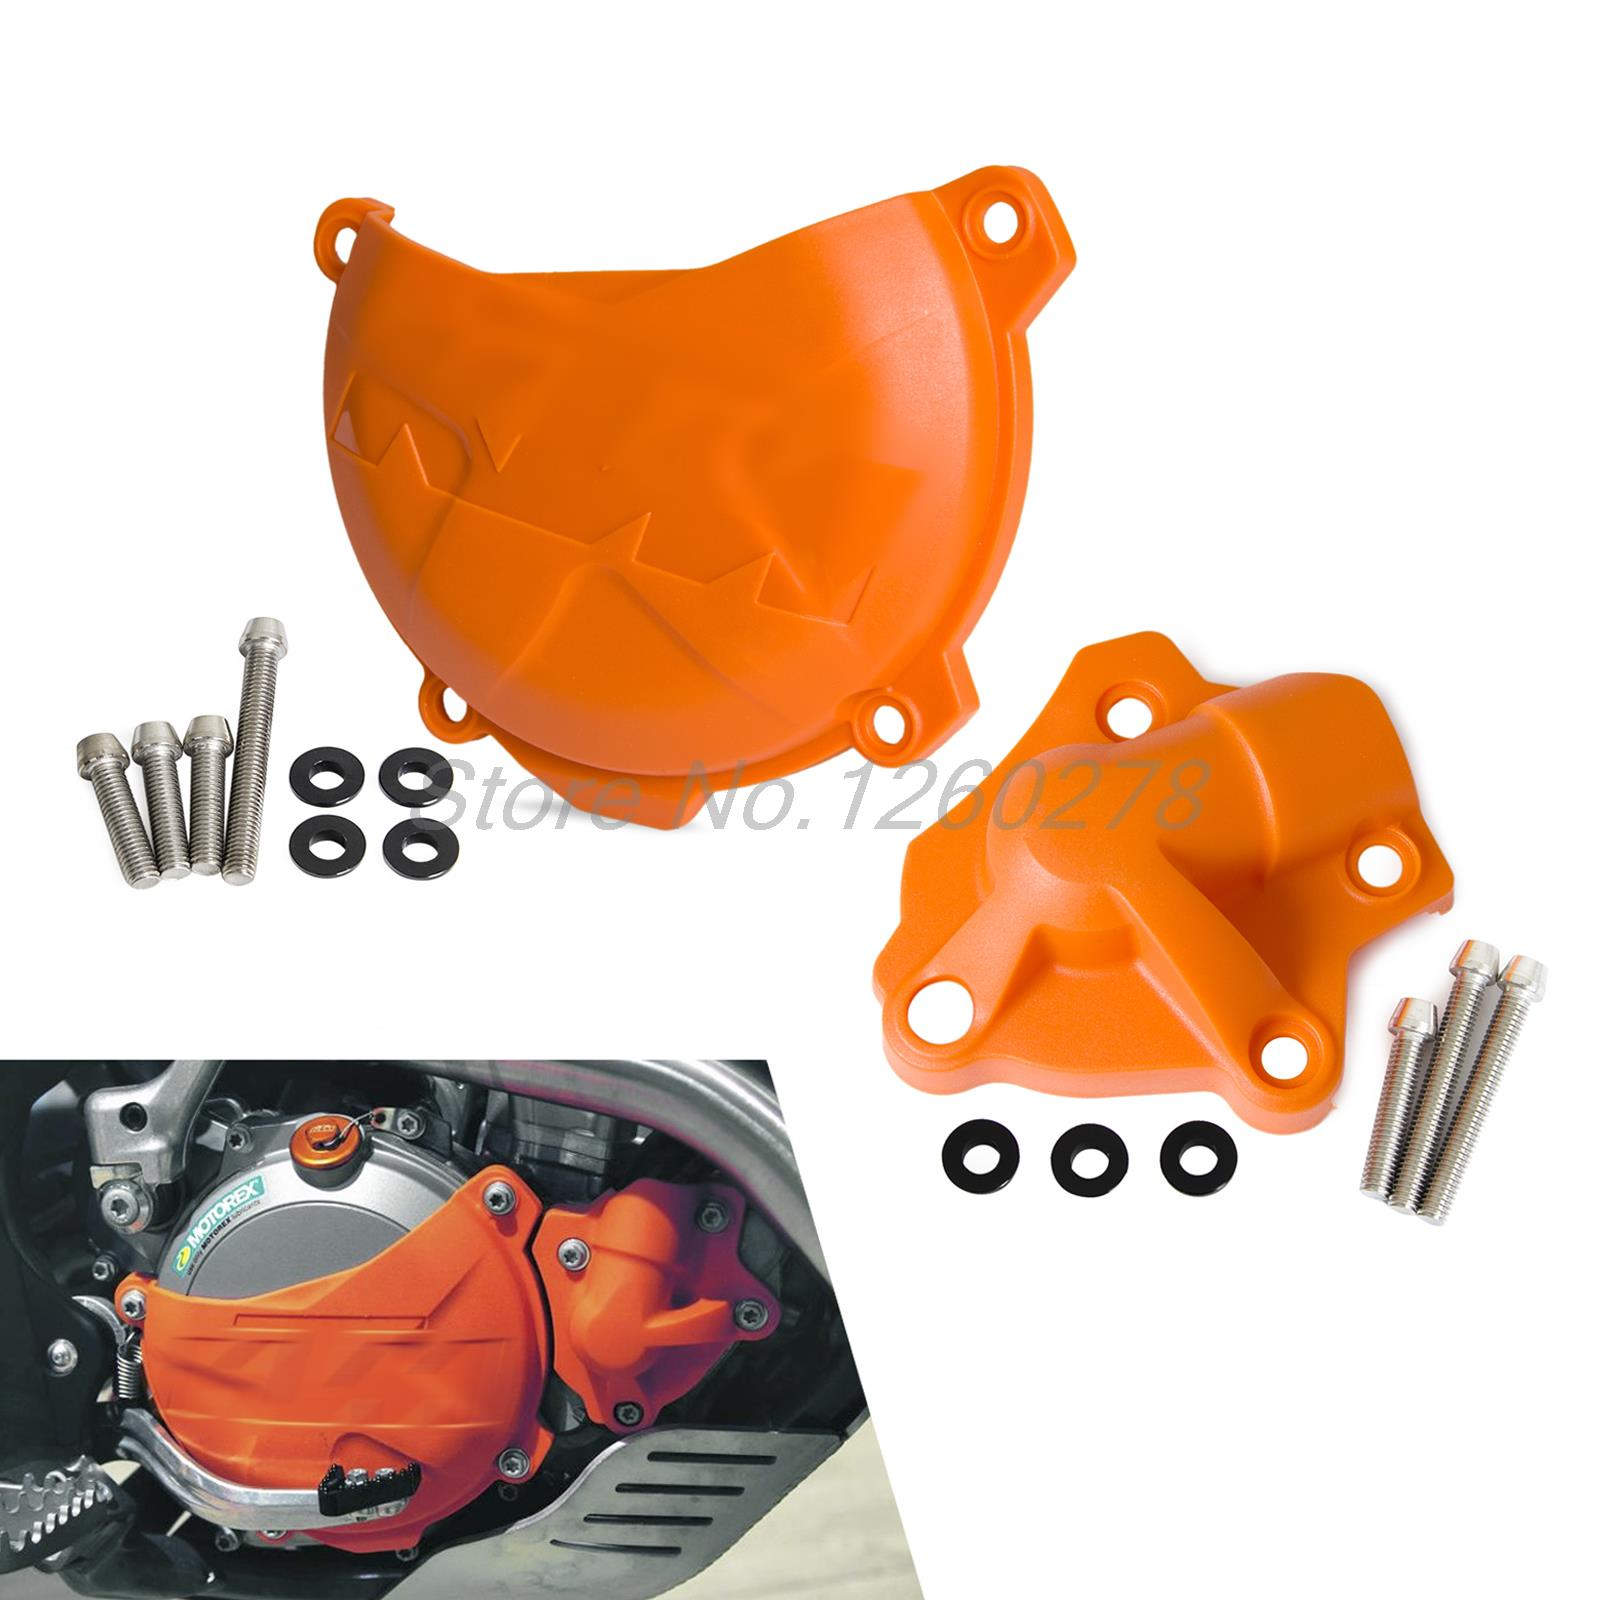 ФОТО Motorcycle Clutch Cover Protection Cover Water Pump Cover Protector For KTM 250 350 SX-F EXC-F XC-F XCF-W SIX DAYS 2013-2016